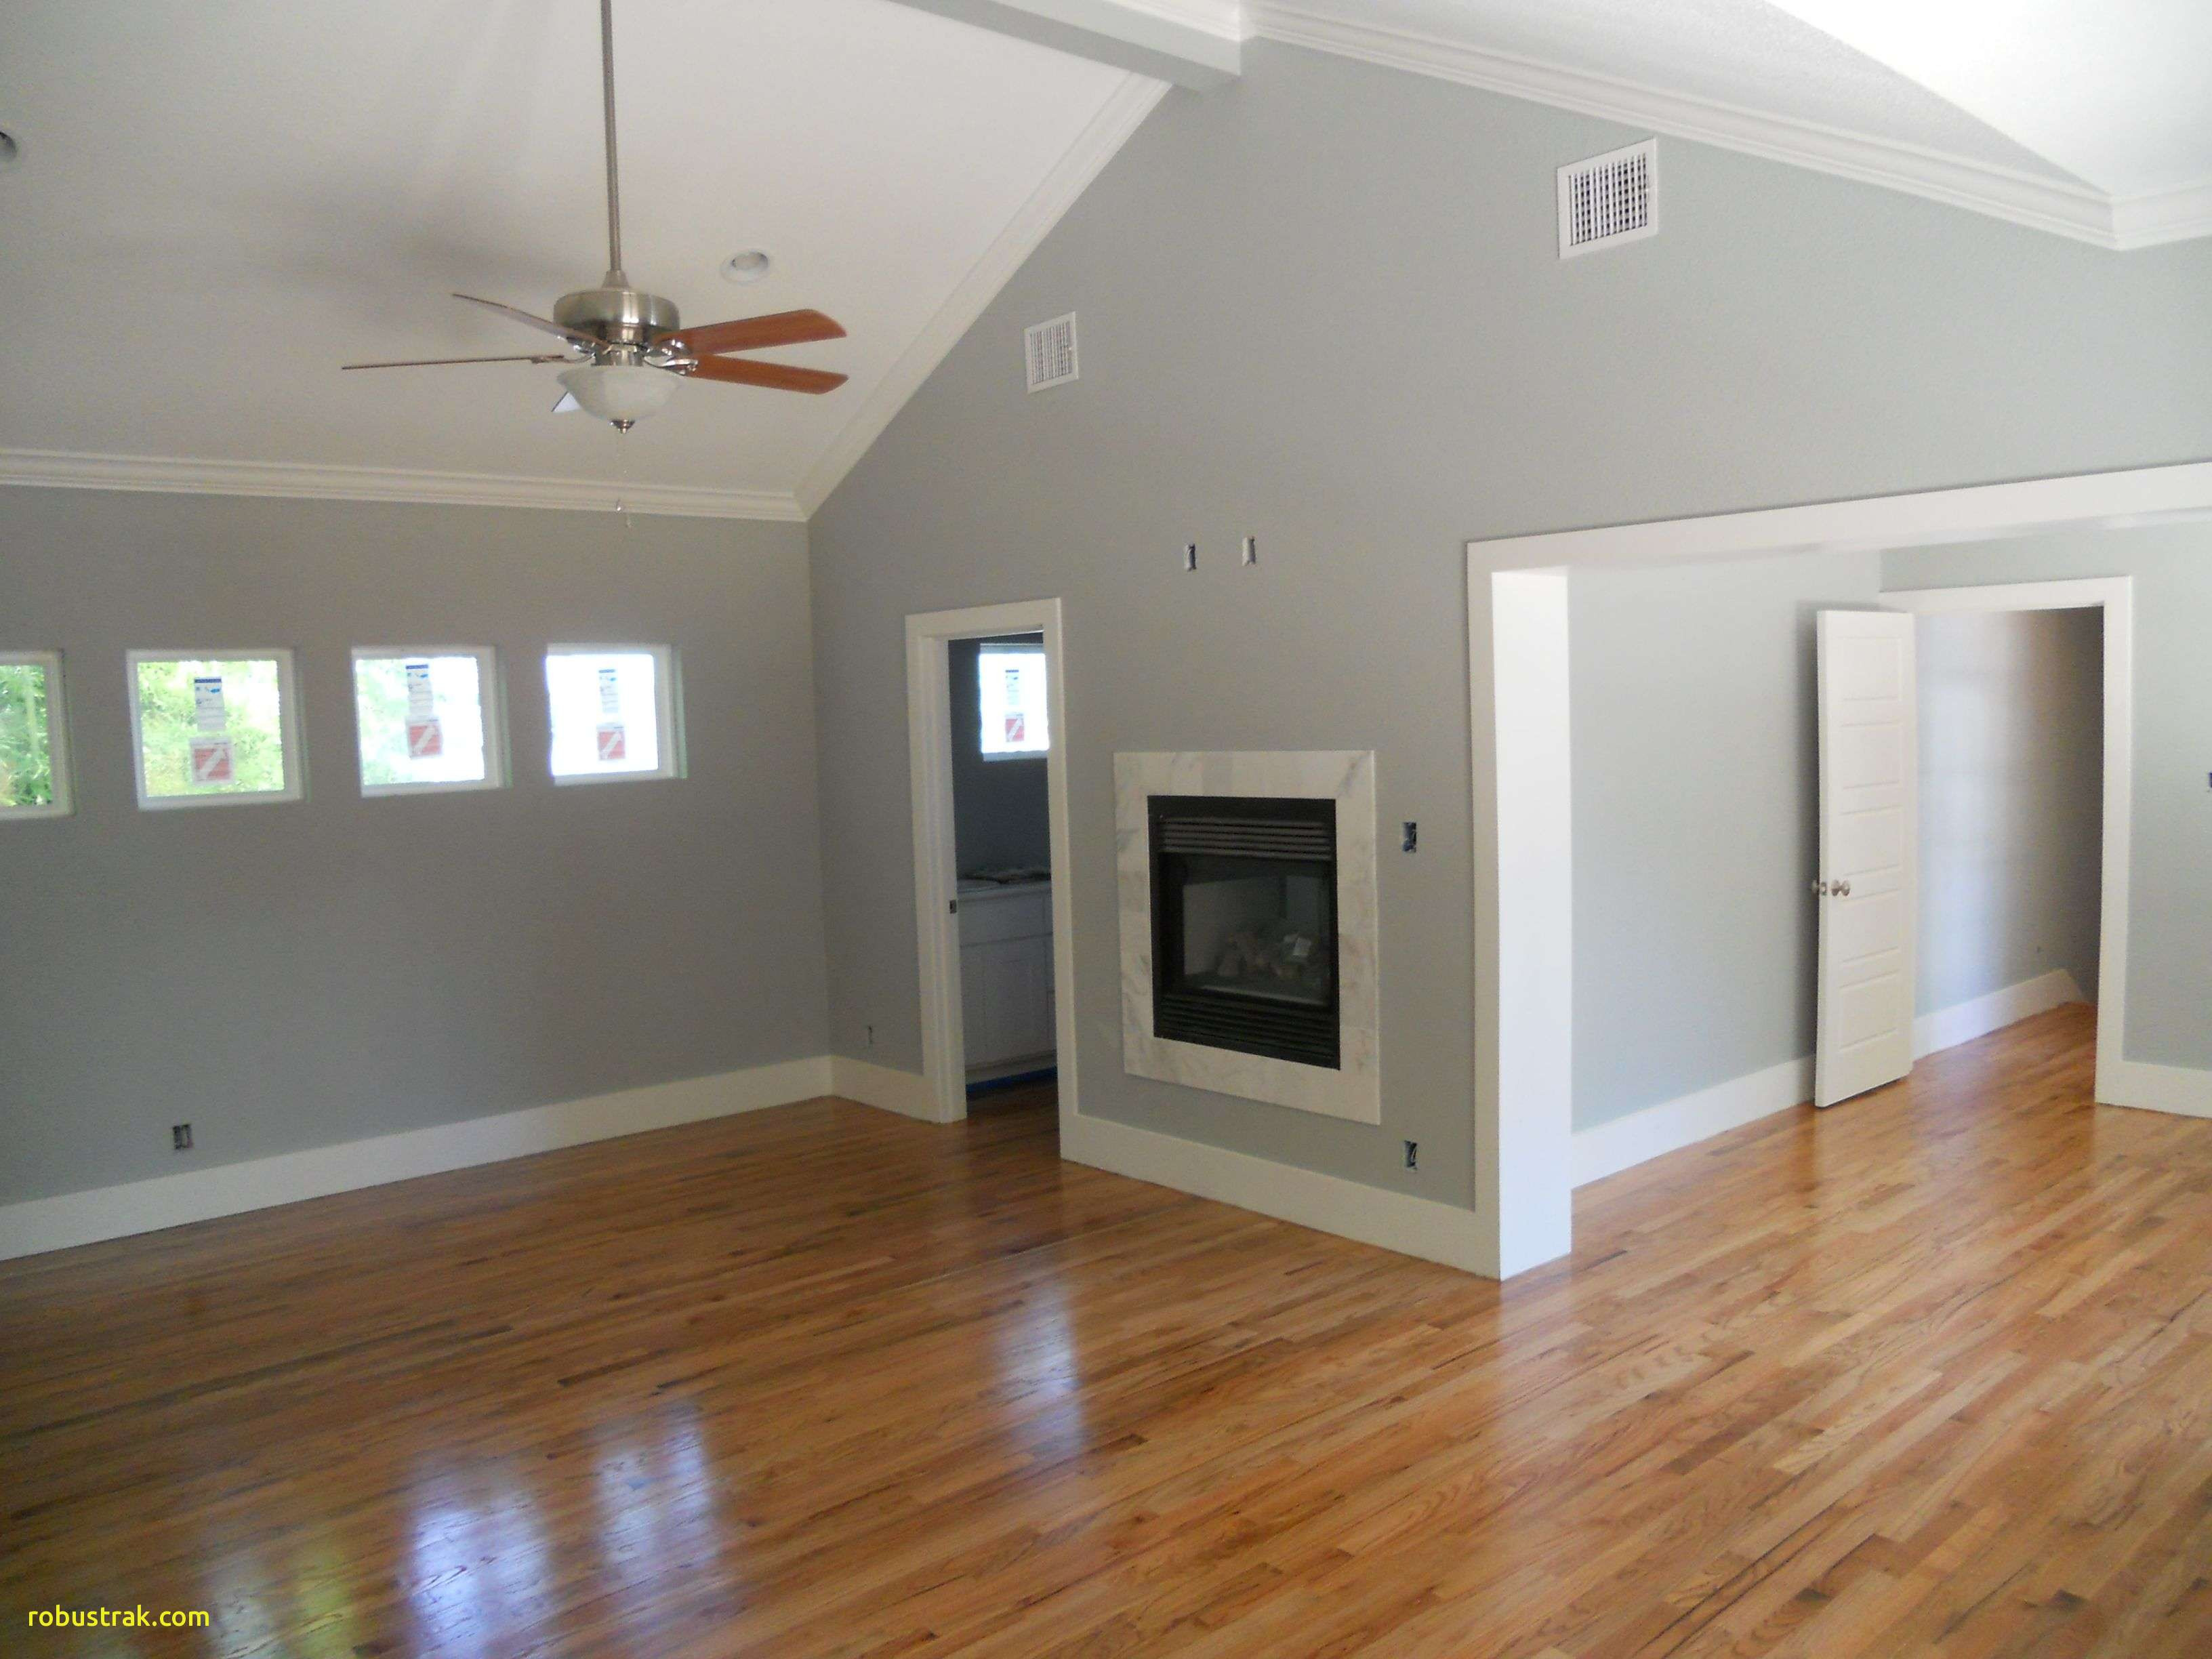 hardwood floor refinishing reviews of awesome wood floors with white baseboards home design ideas within color of wood flooring with grey walls and white trimt sure if we have white trim